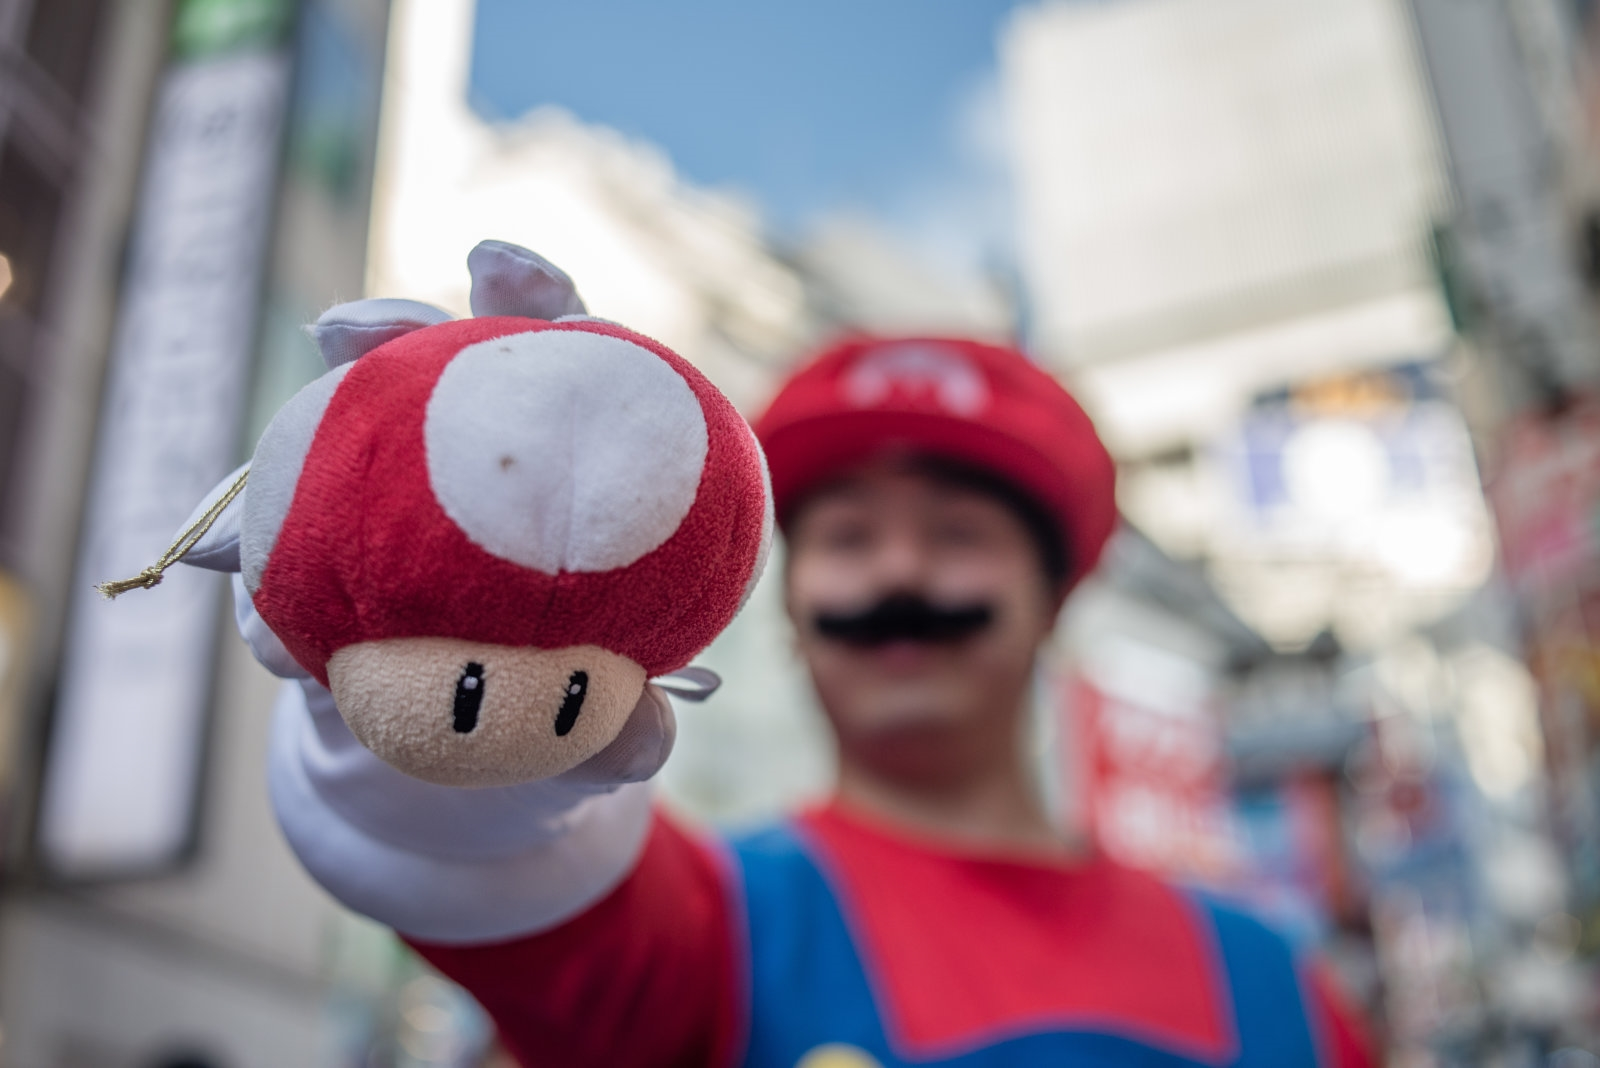 Nintendo is making a 'Dr. Mario World' mobile game with Line | DeviceDaily.com